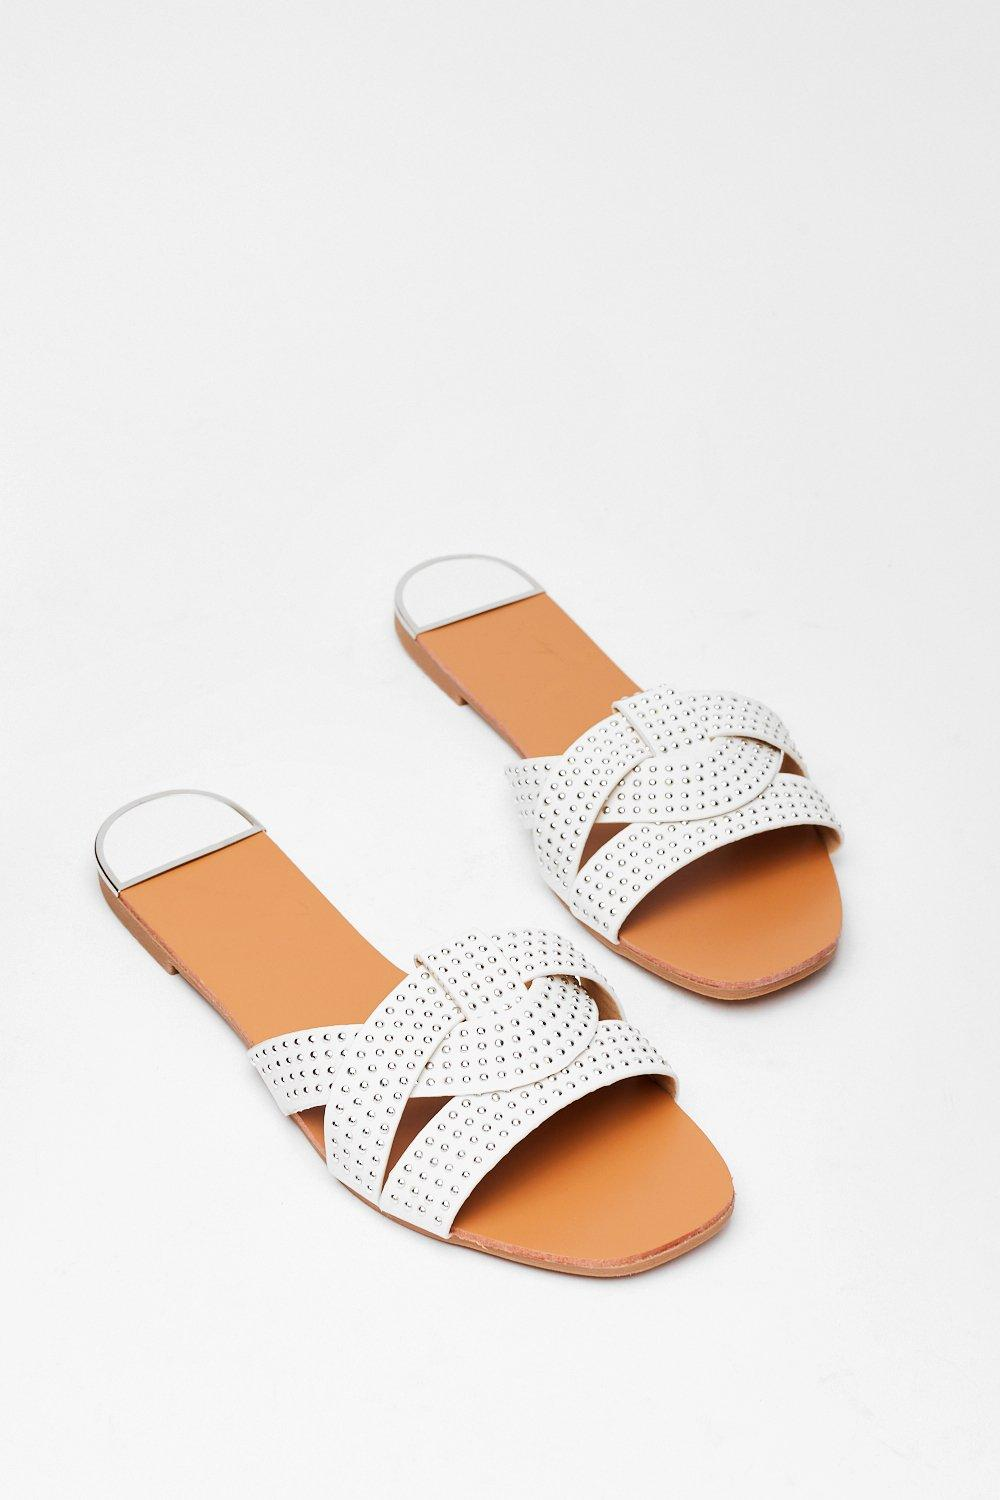 Image of Womens Stud Never Look Back Faux Leather Flat Sandals - White